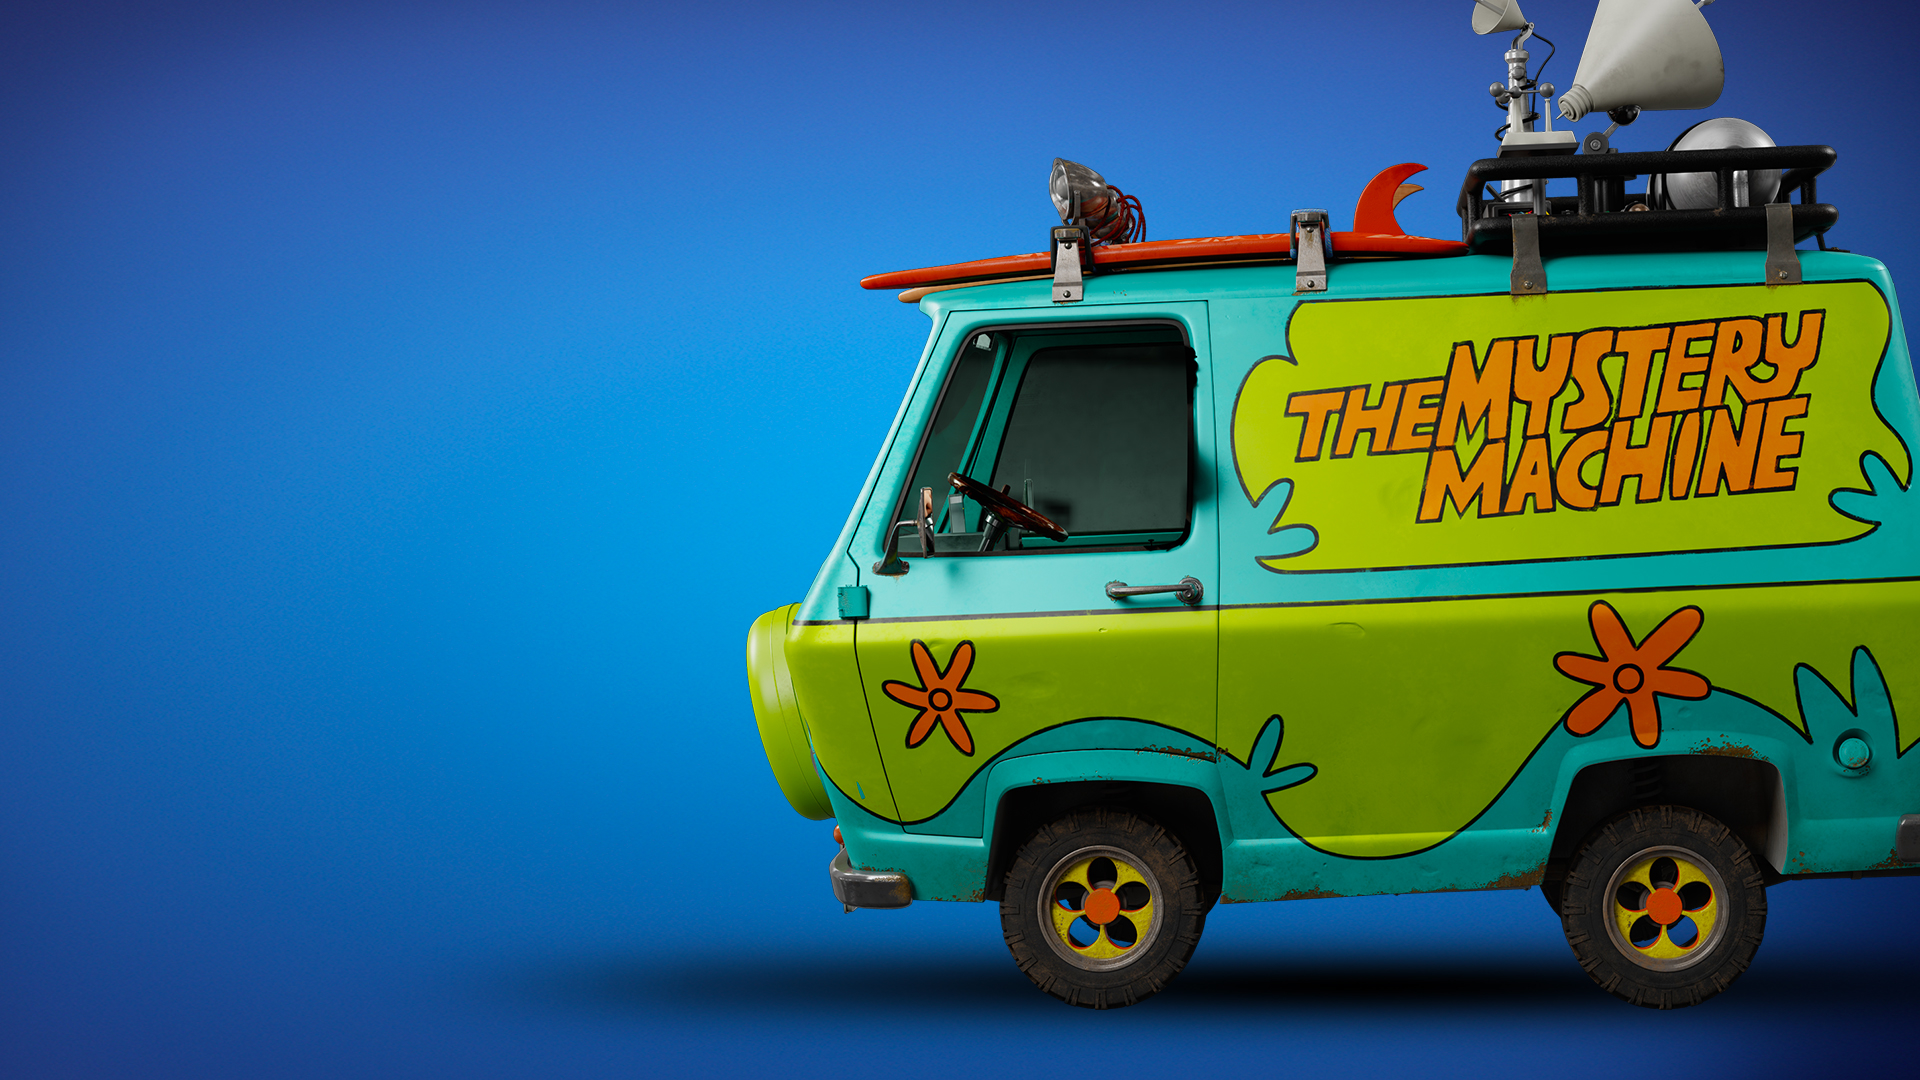 The Mystery Machine Van Scooby Doo Wallpaper Hd Movies 4k Wallpapers Images Photos And Background